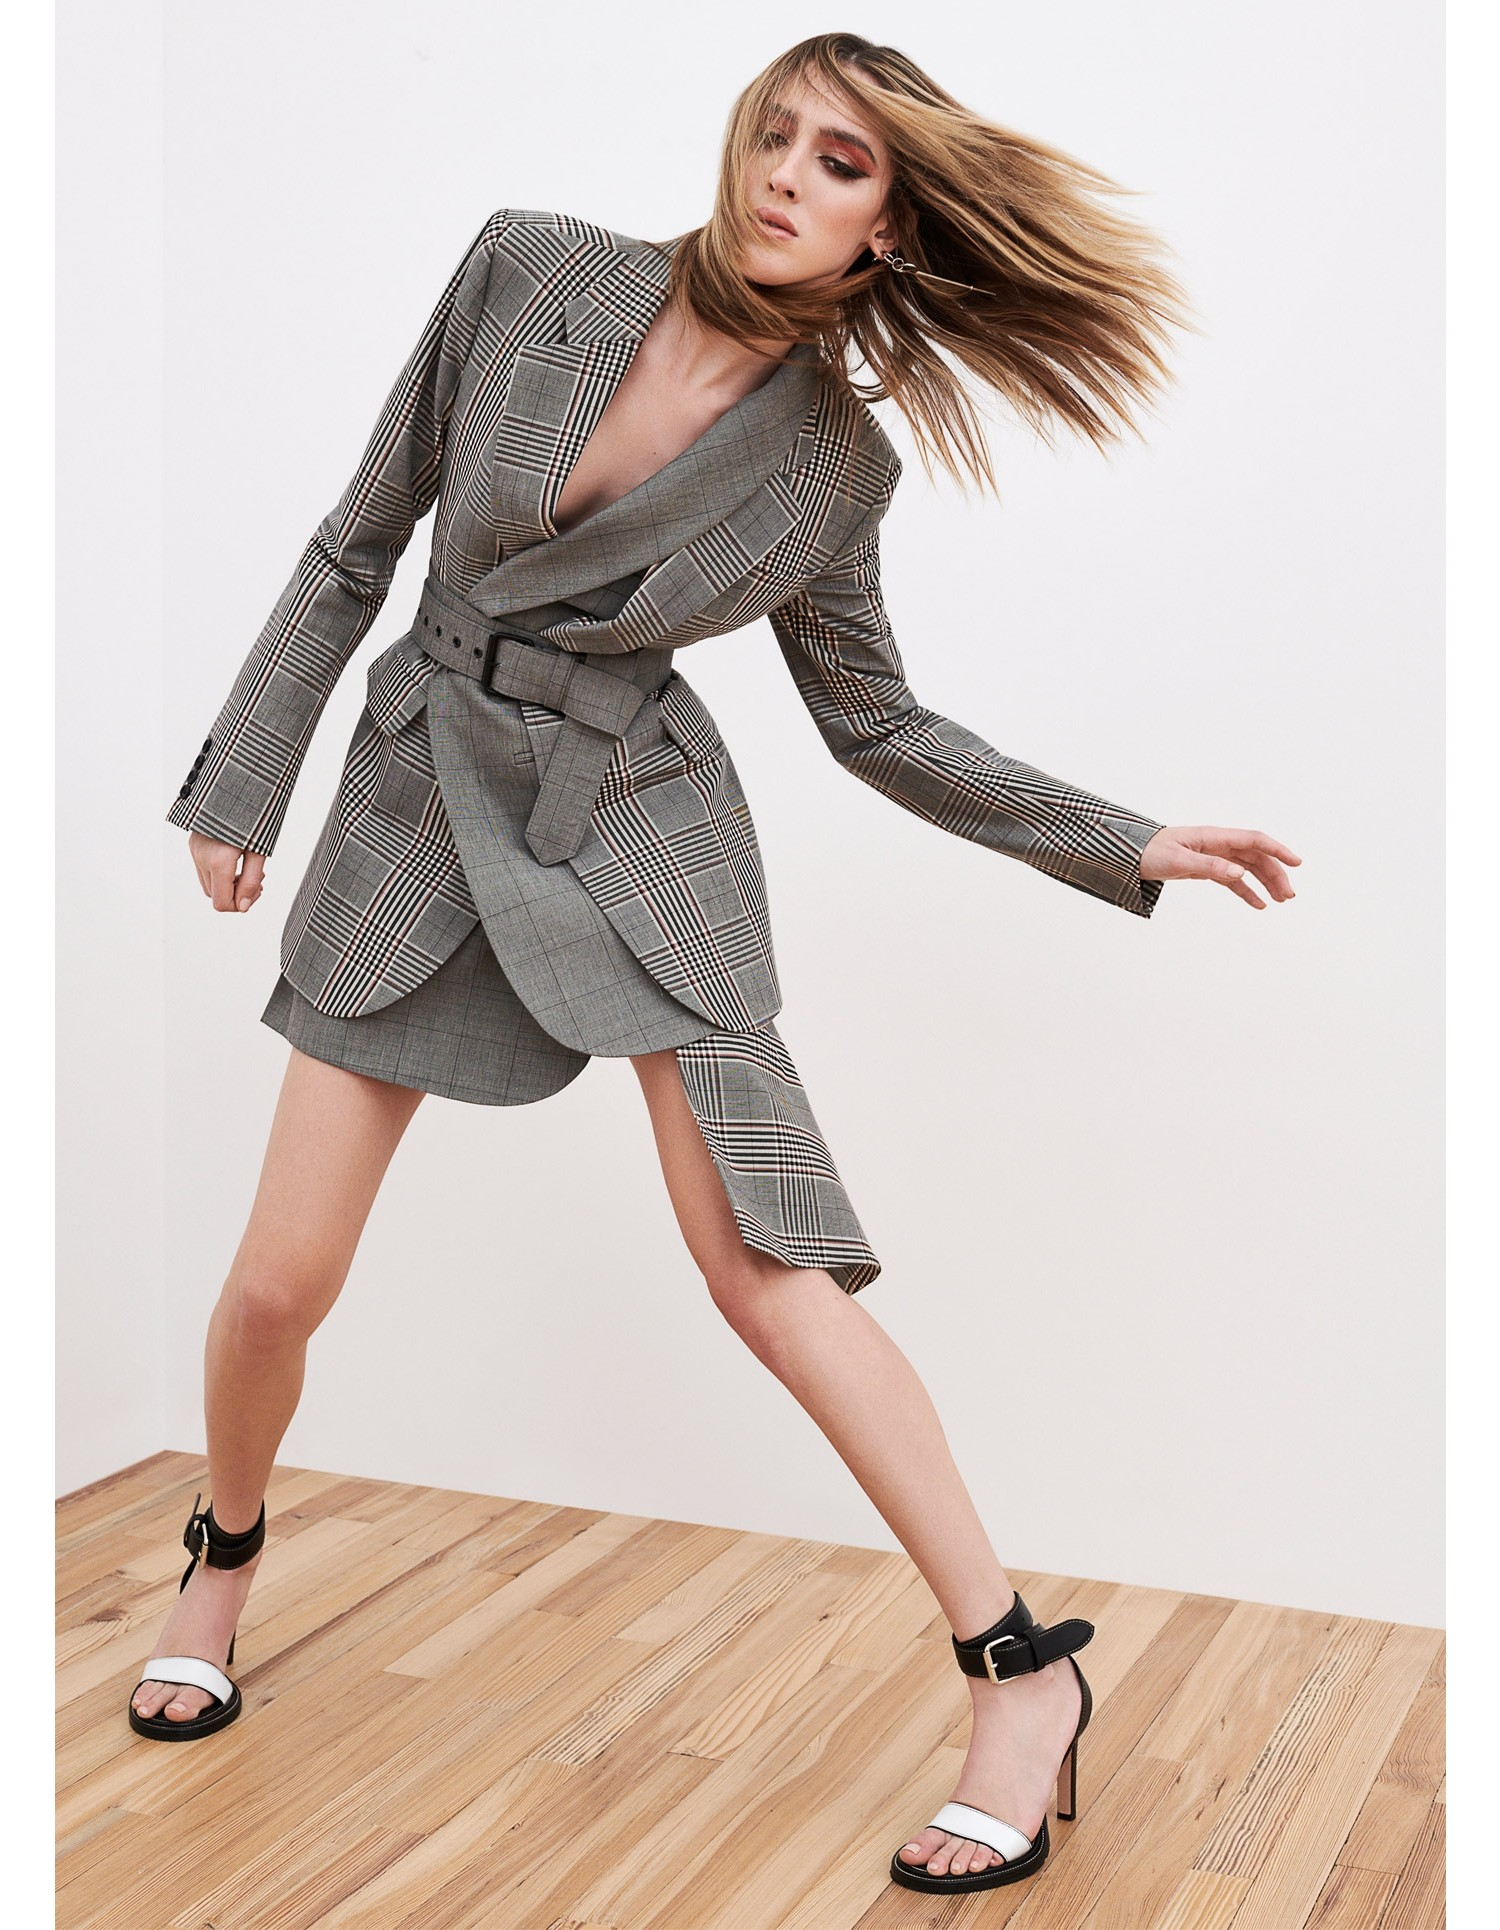 MONSE Plaid Suiting Skirt Model View